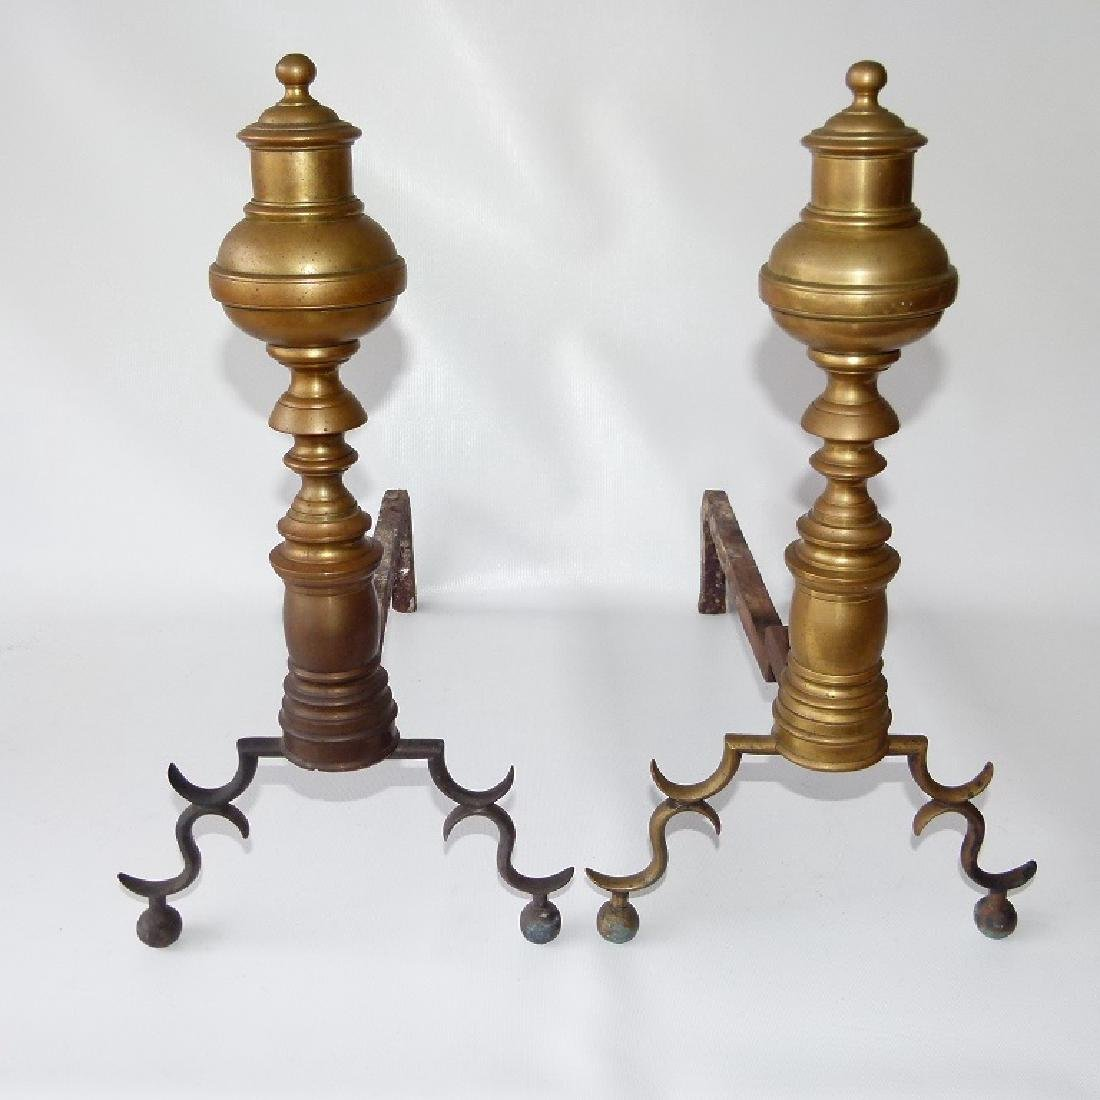 PAIR FEDERAL BRASS ANDIRONS, 19TH C. - 2